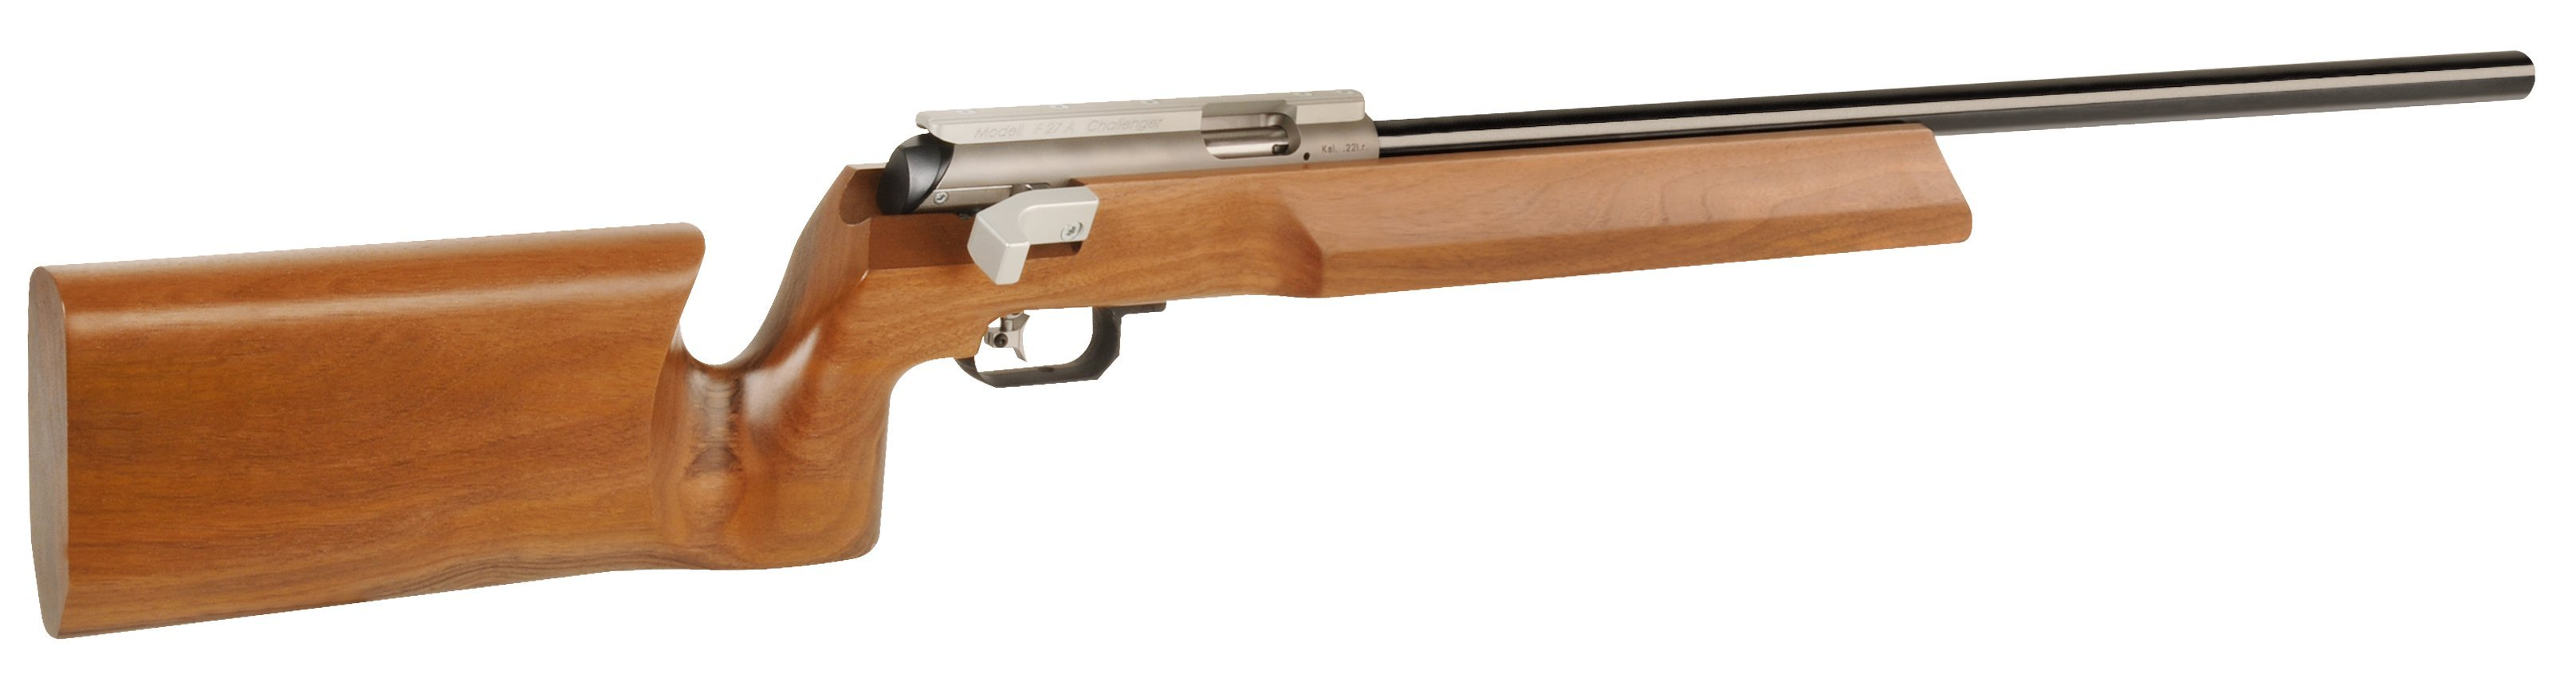 F27A with a BR-50 benchrest stock